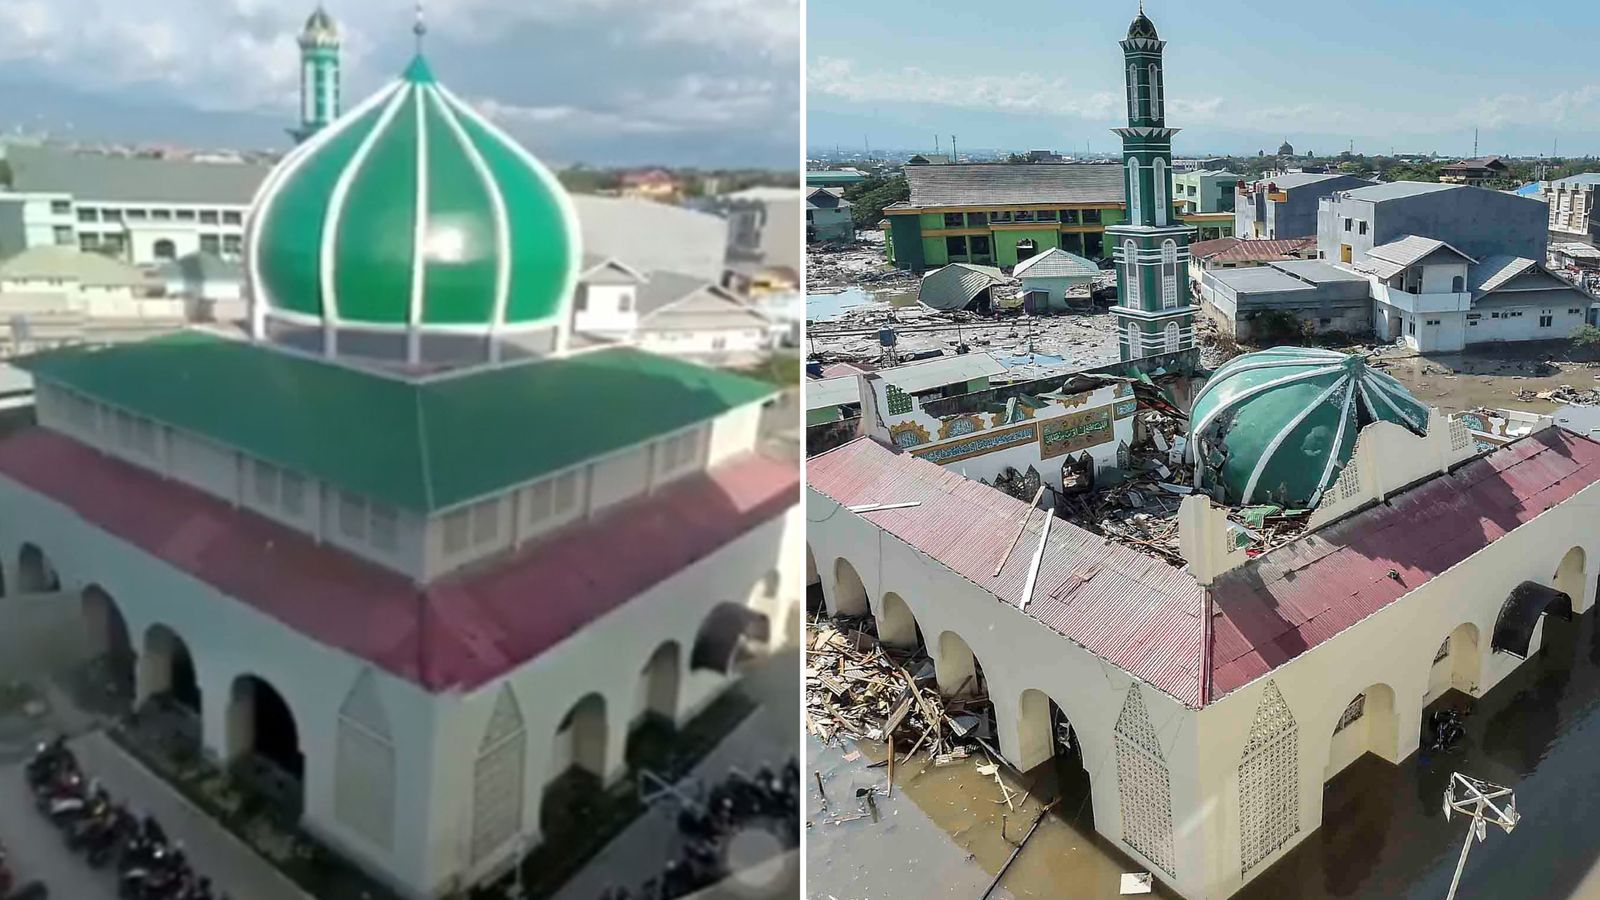 Indonesia tsunami: Before and after the earthquake